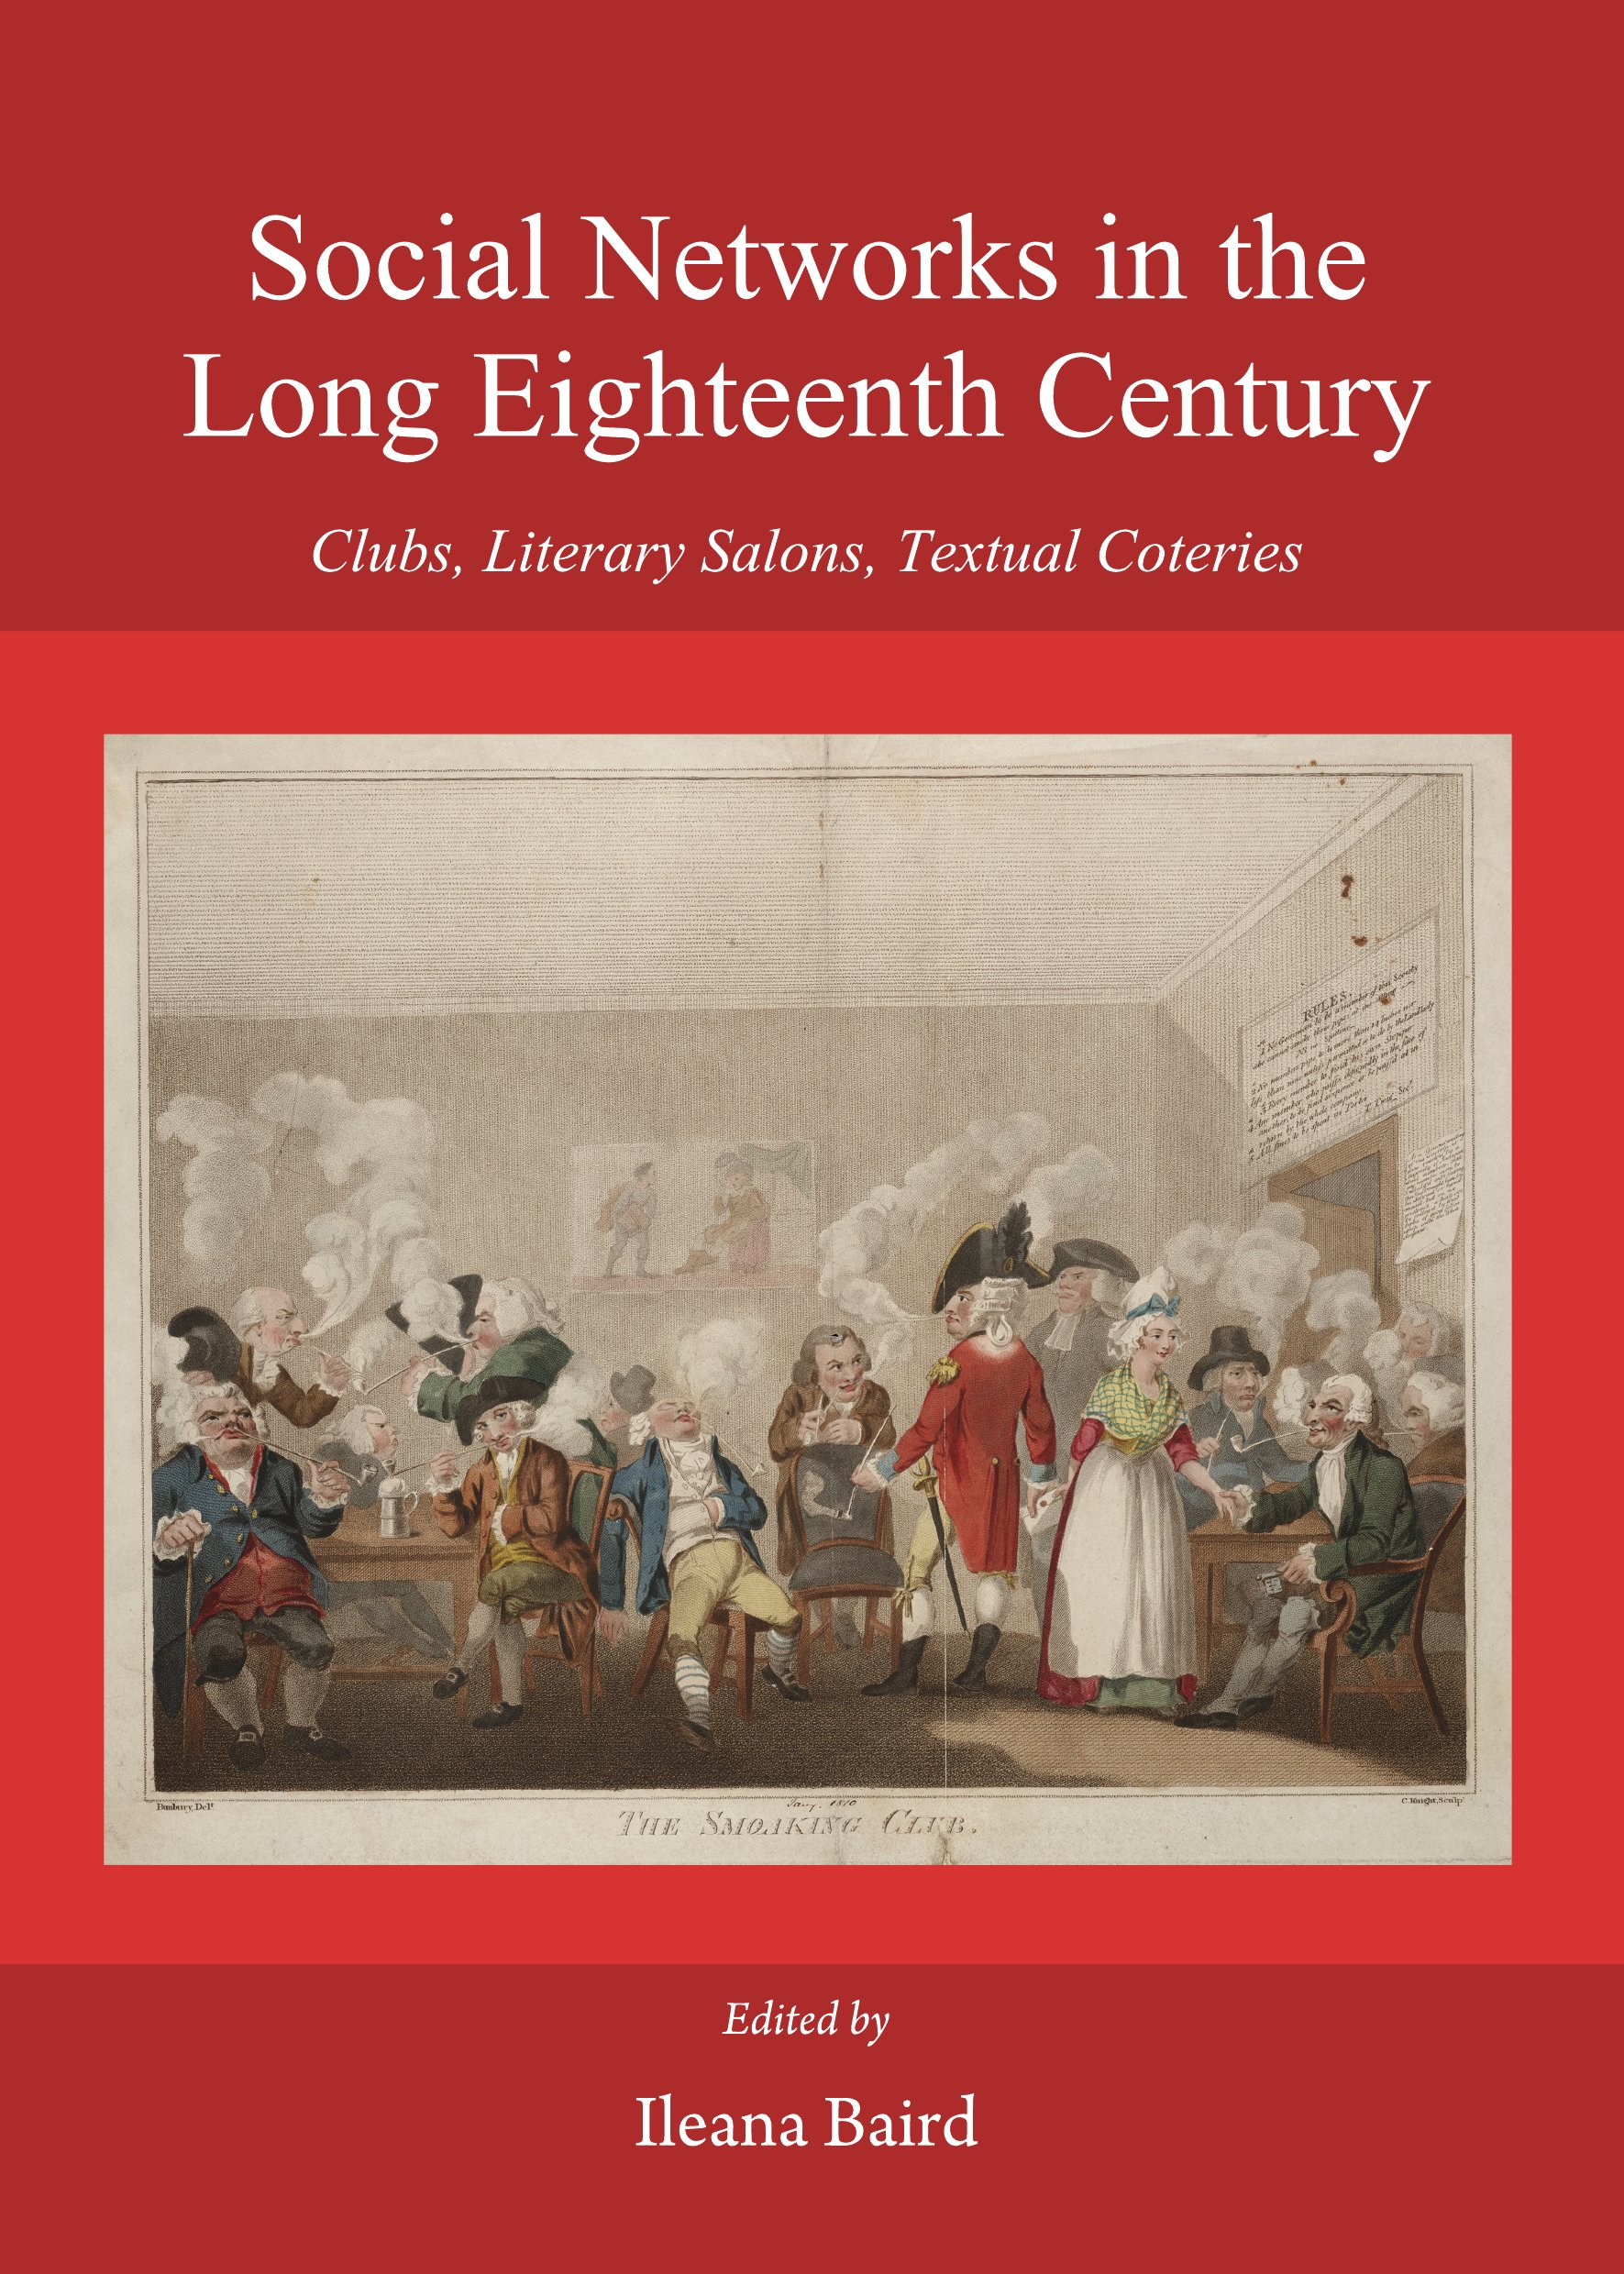 Social Networks in the Long Eighteenth Century: Clubs, Literary Salons, Textual Coteries